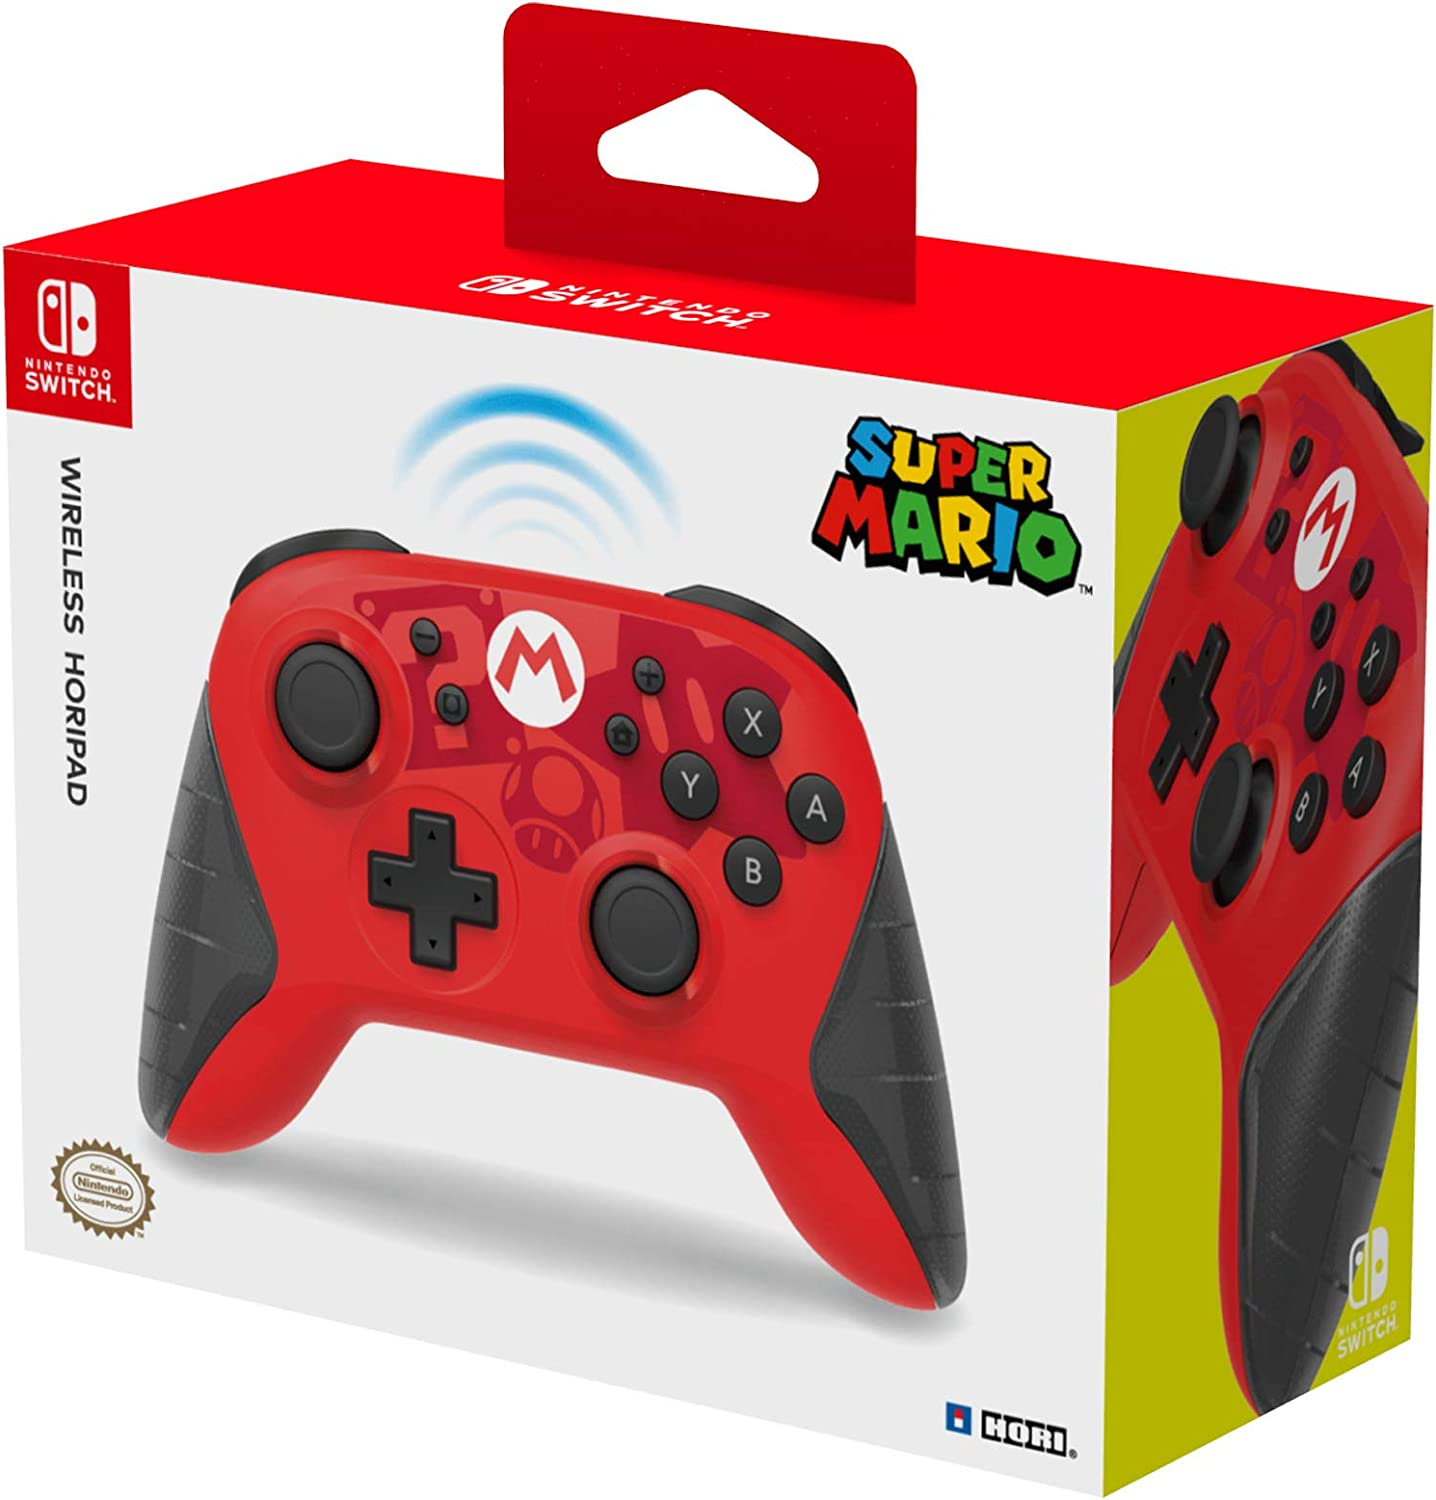 Mando pro nintendo switch inalambrico